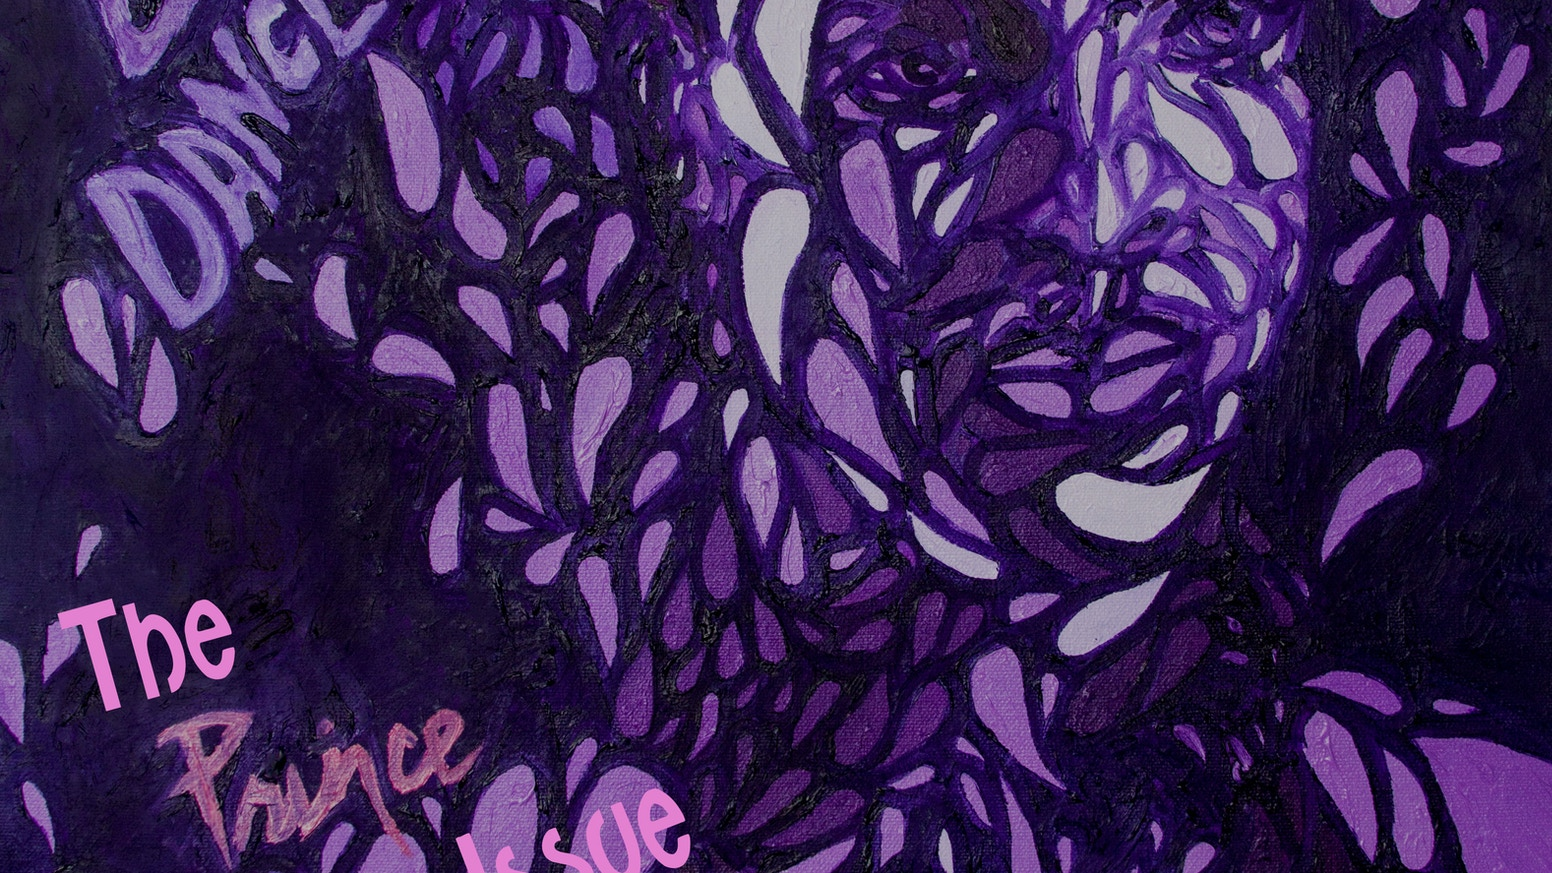 Original writing and art inspired by the music of Prince.